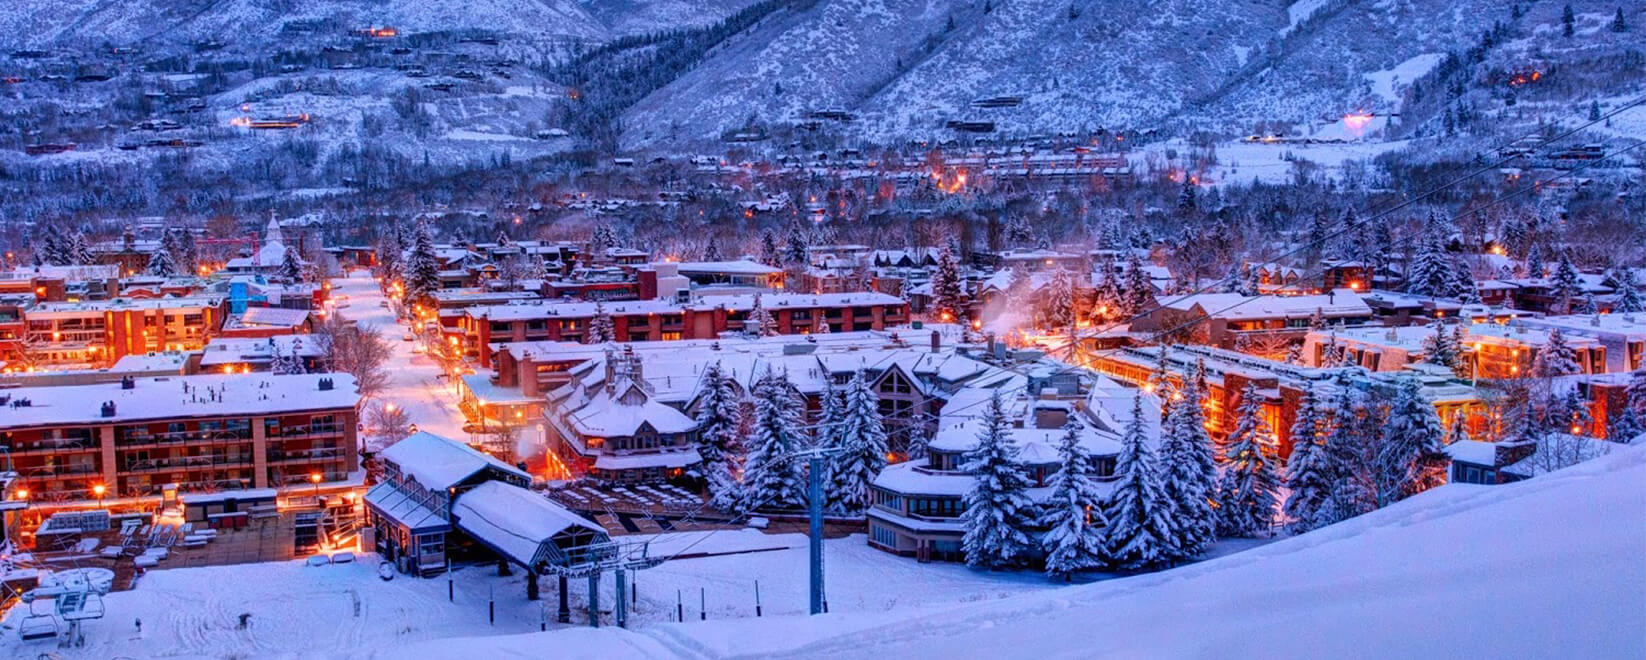 Après & Chill: Where to Go and What to Pack in Lake Tahoe, Aspen, and Park City